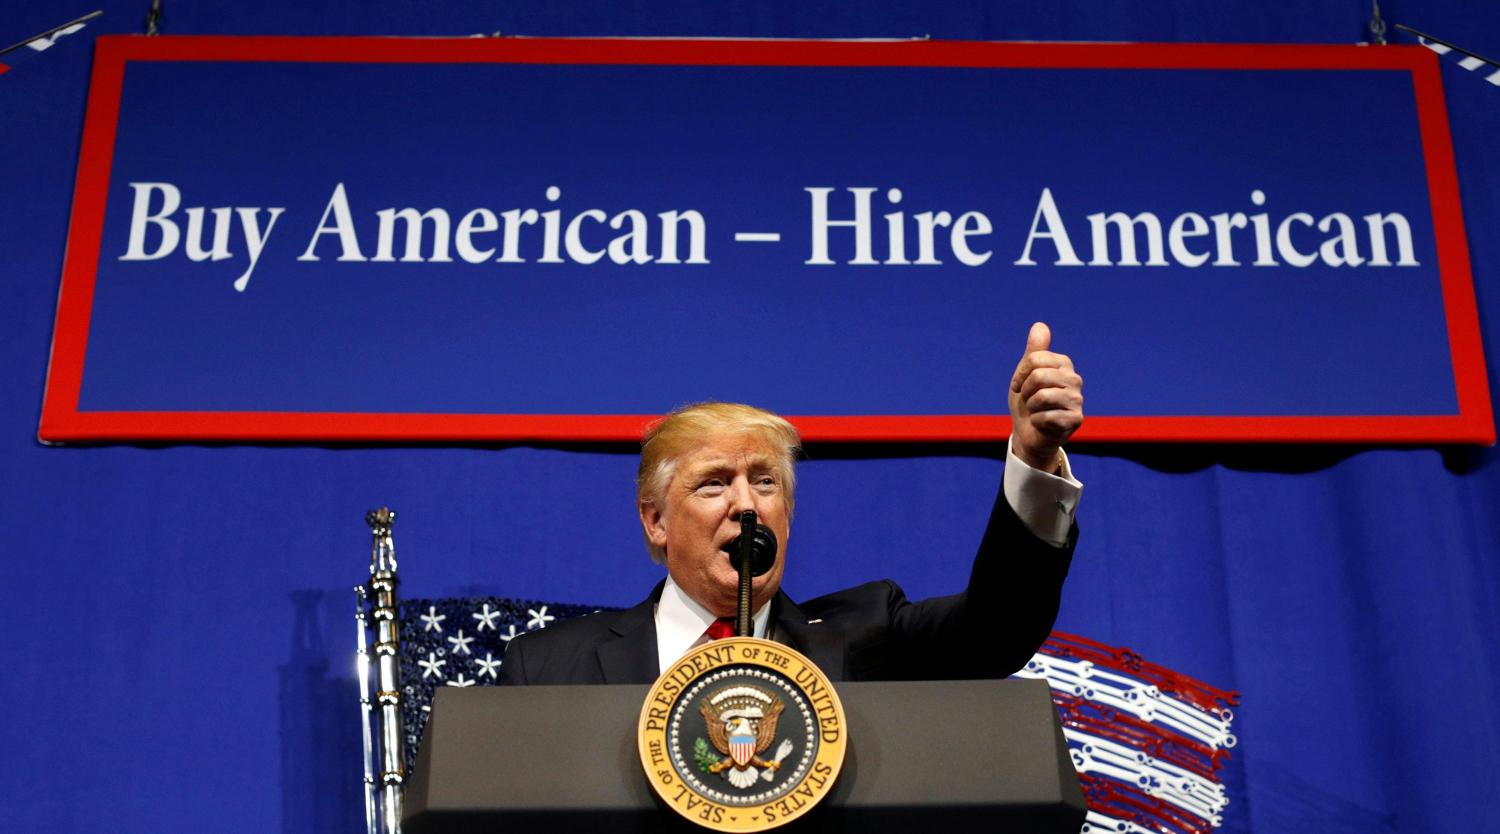 U.S. President Donald Trump speaks before signing an executive order directing federal agencies to recommend changes to a temporary visa program used to bring foreign workers to the United States